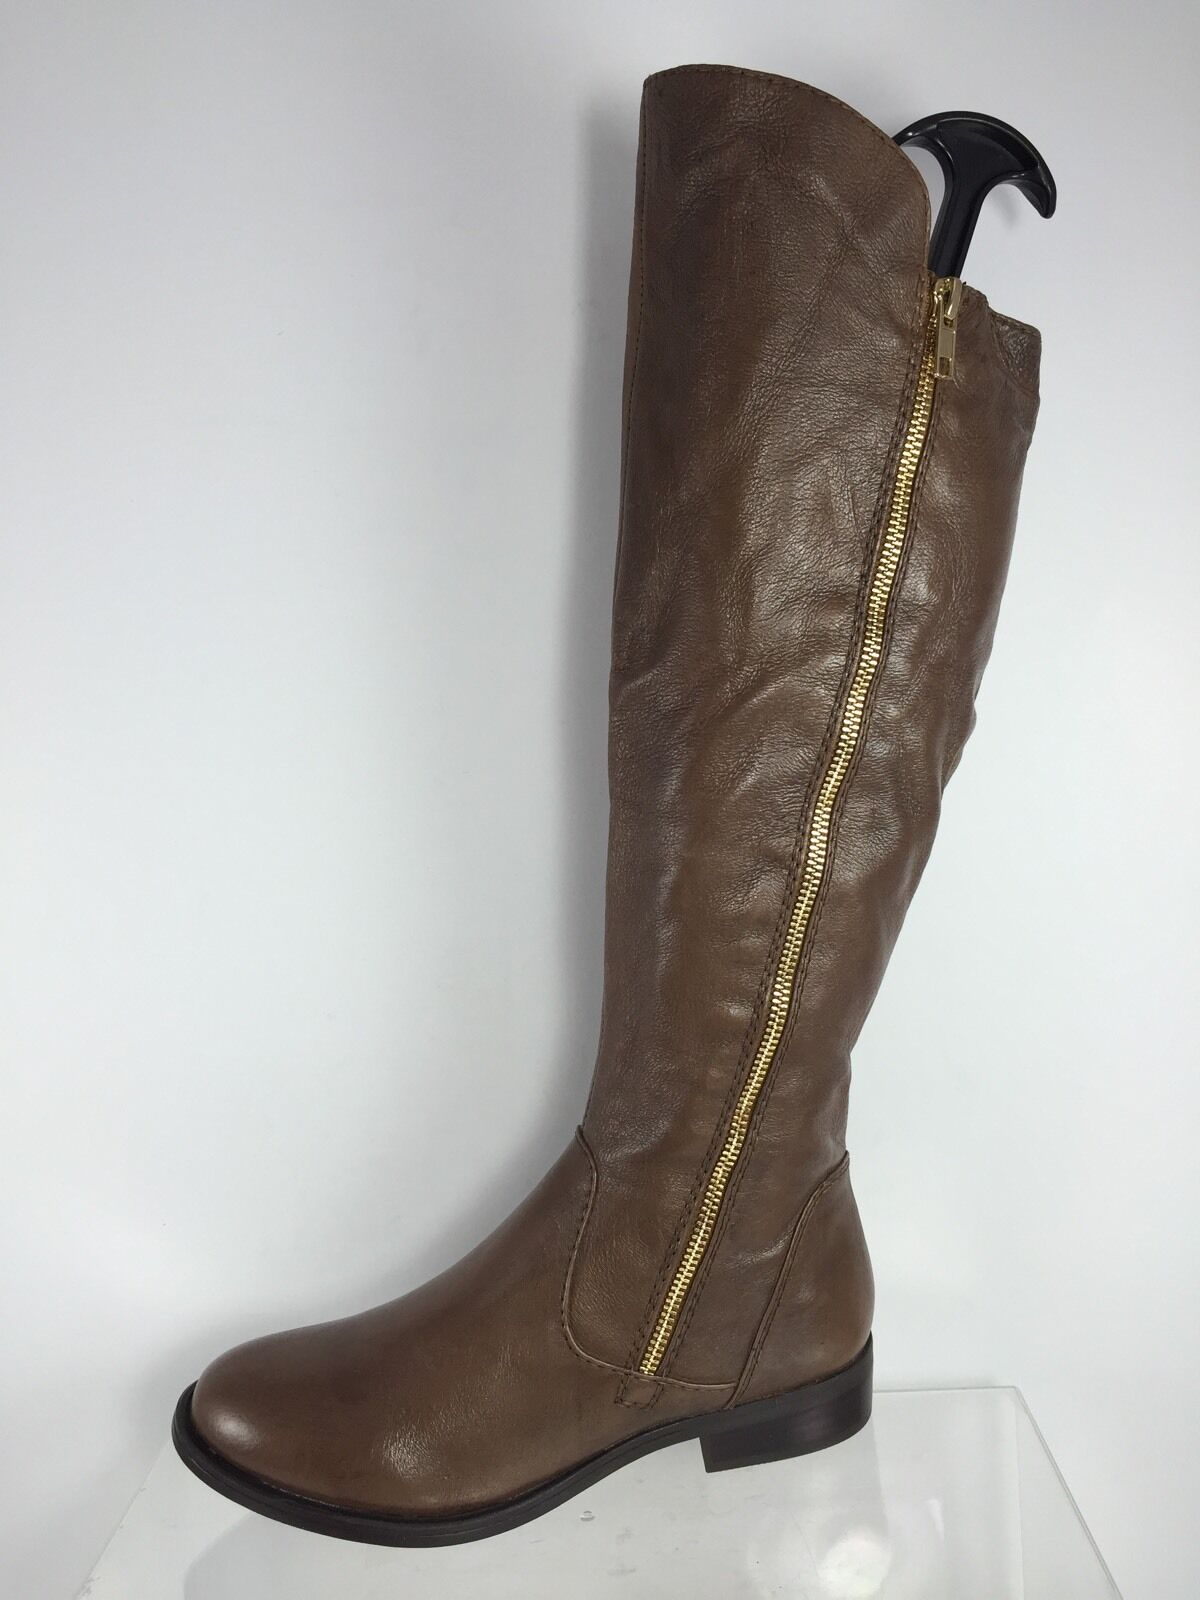 Steve Madden Womens Brown Leather Knee Boots 6.5 M